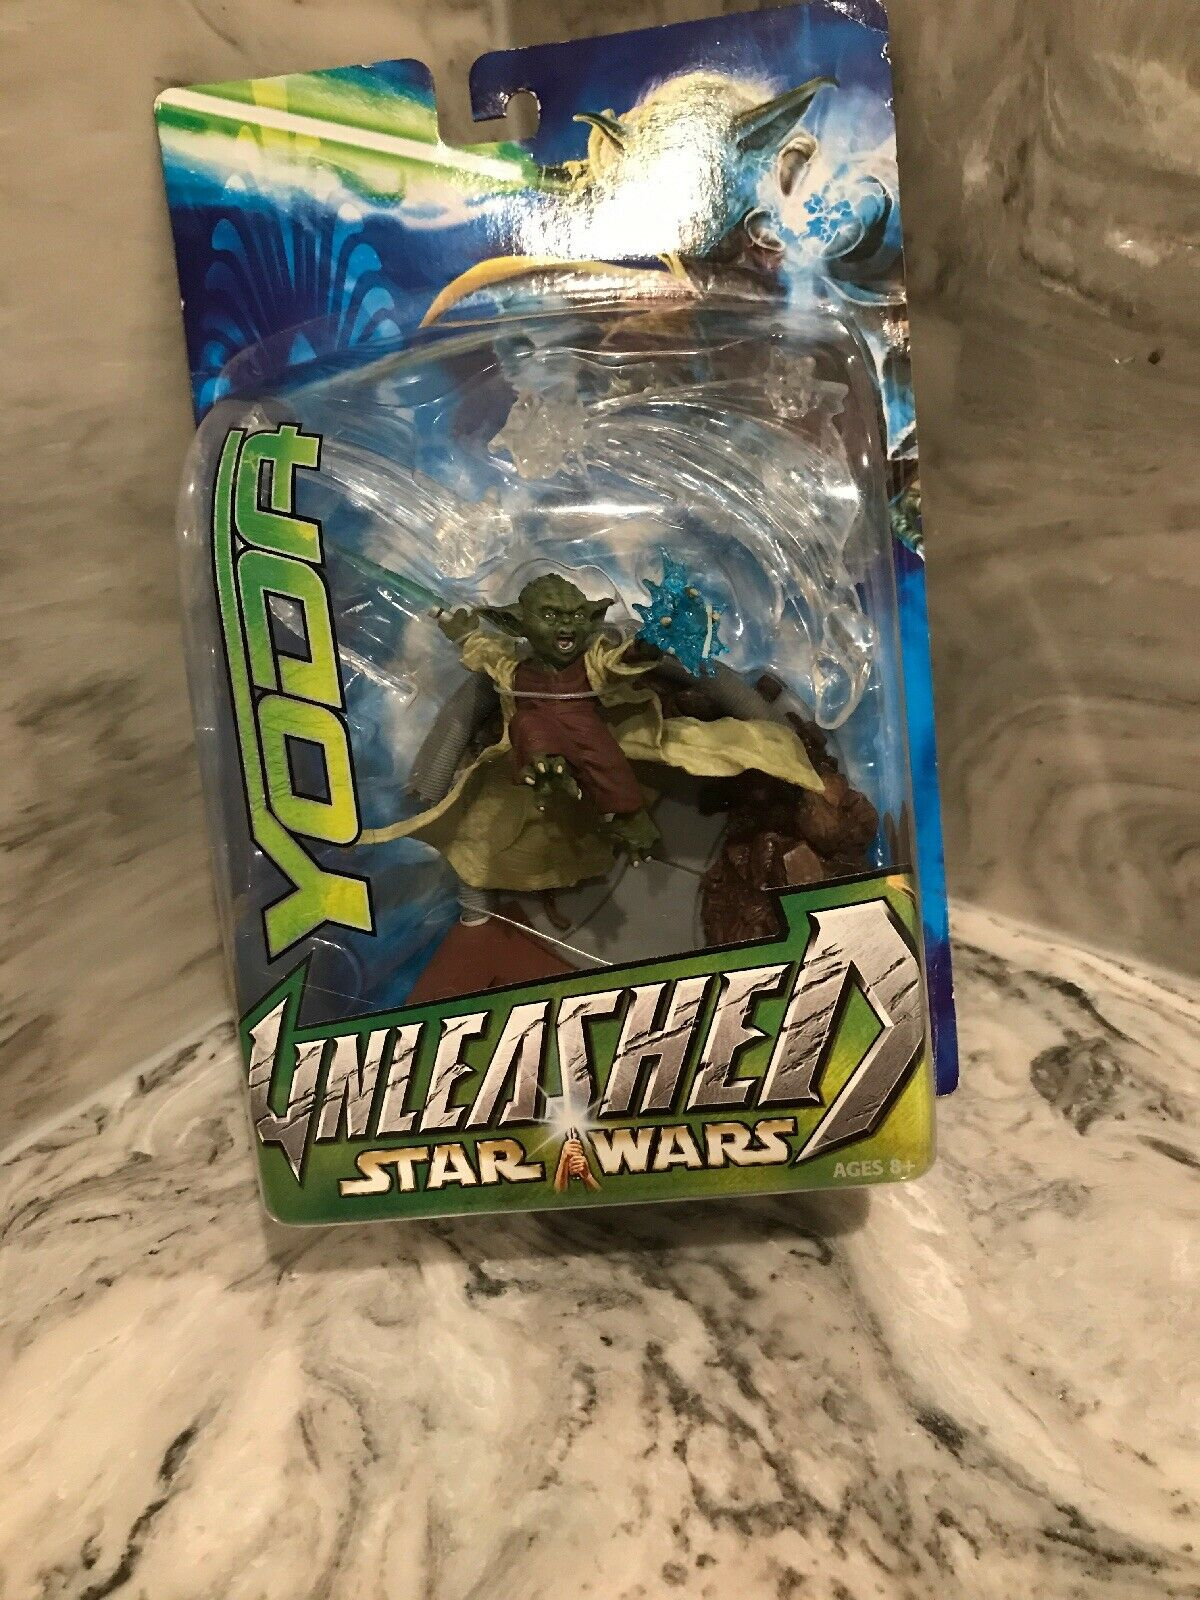 Hasbro Yoda Star Wars Unleashed Action Figure